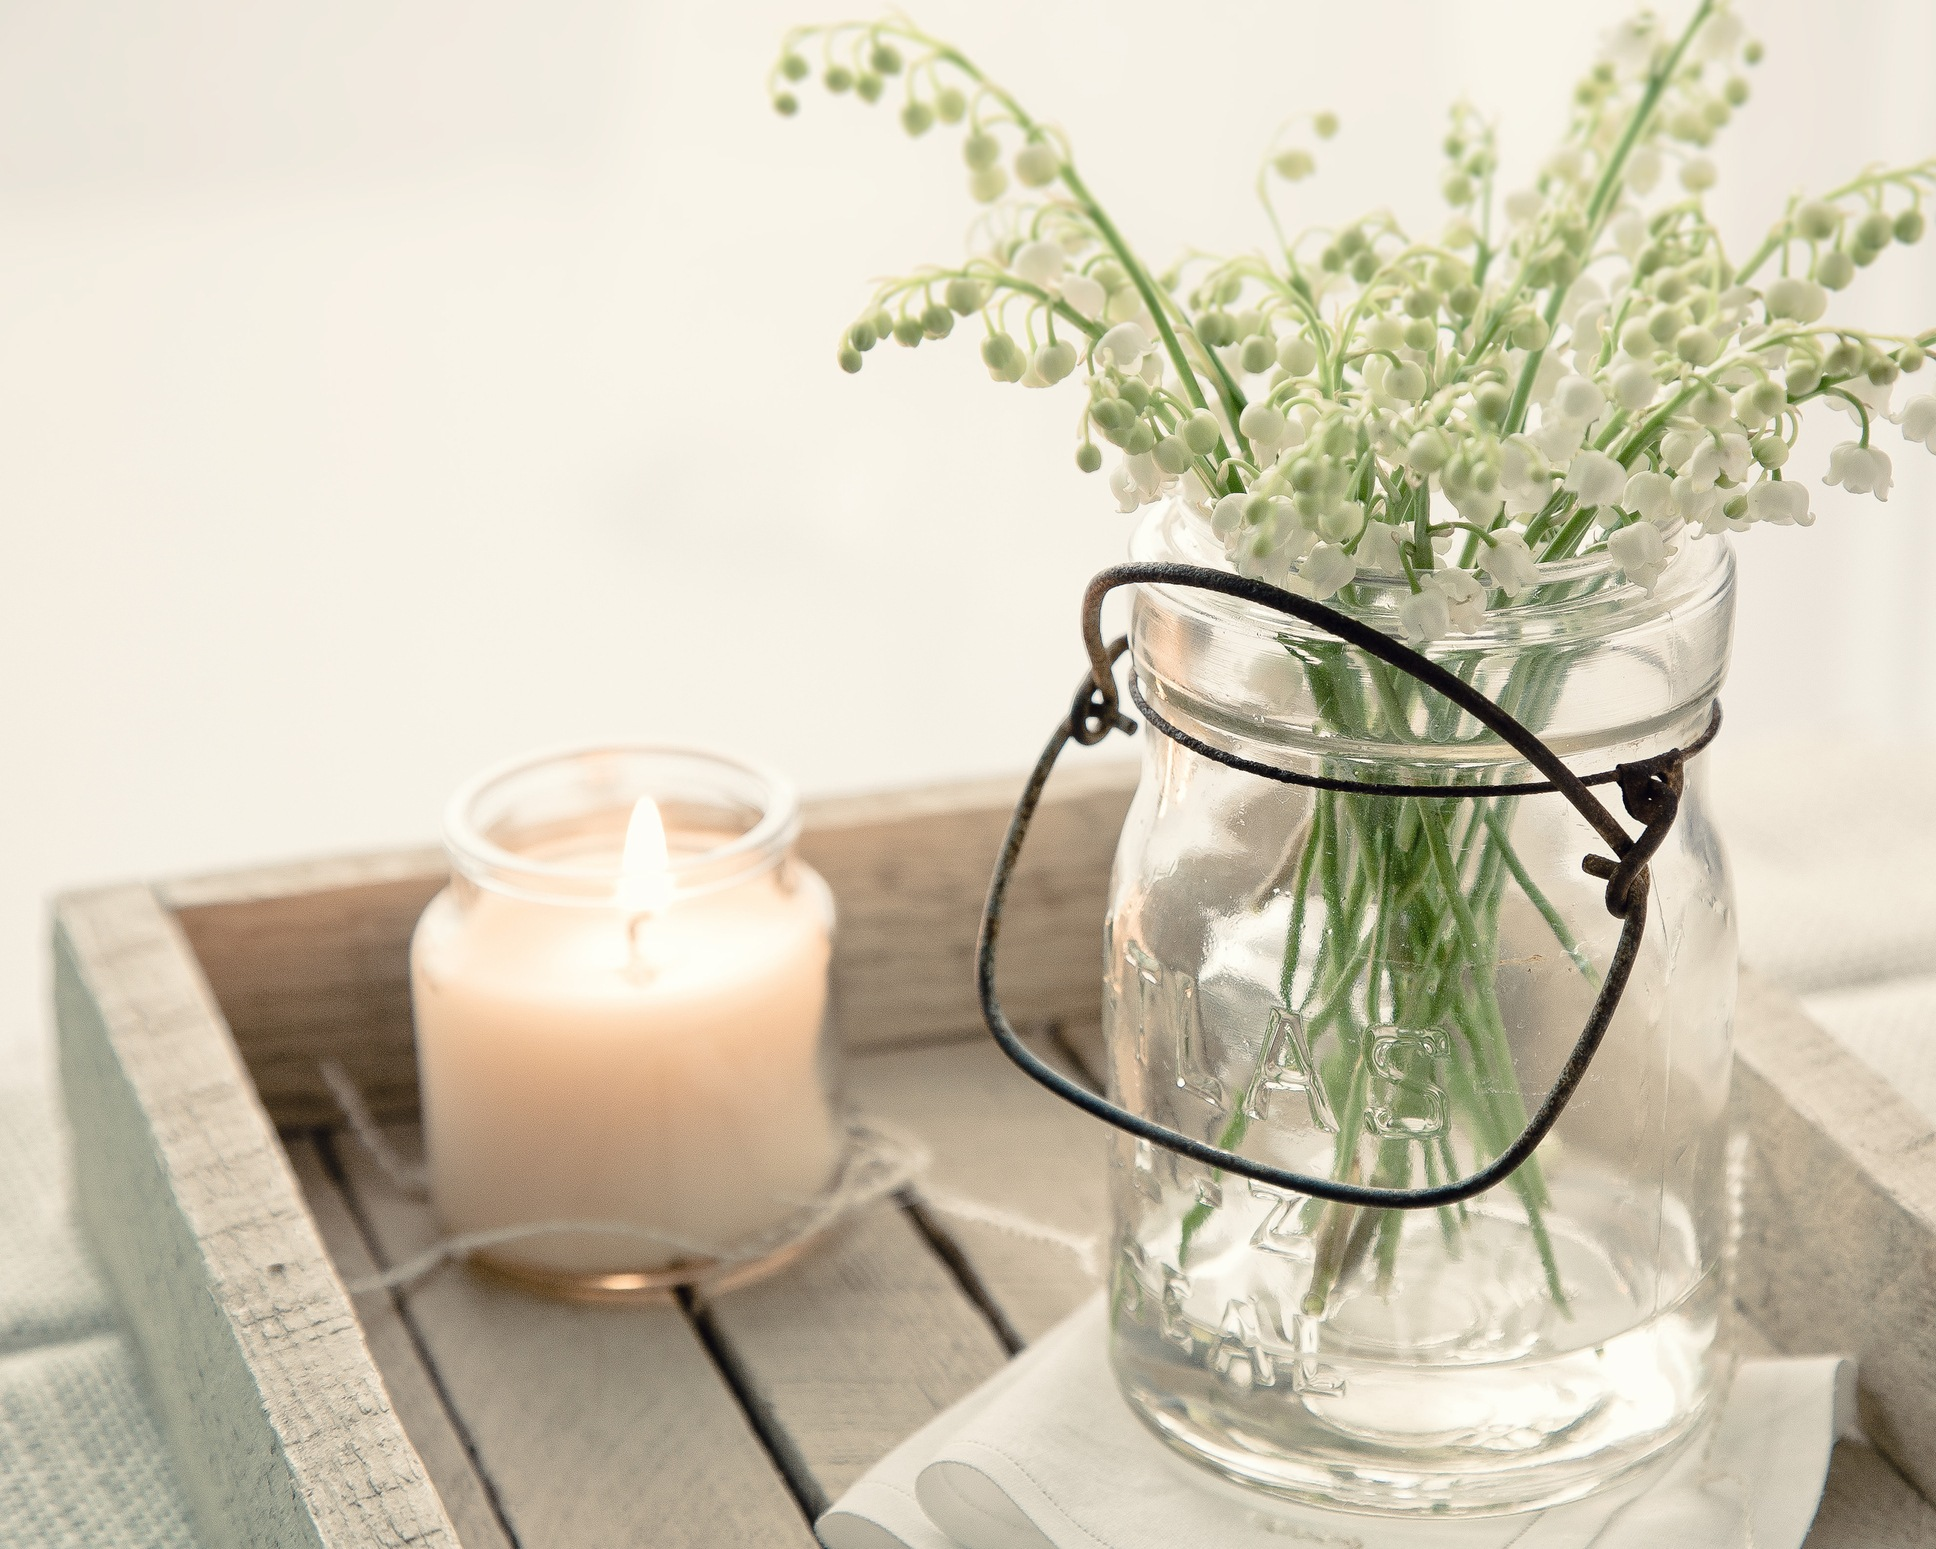 A plant and a candle on a wooden tray